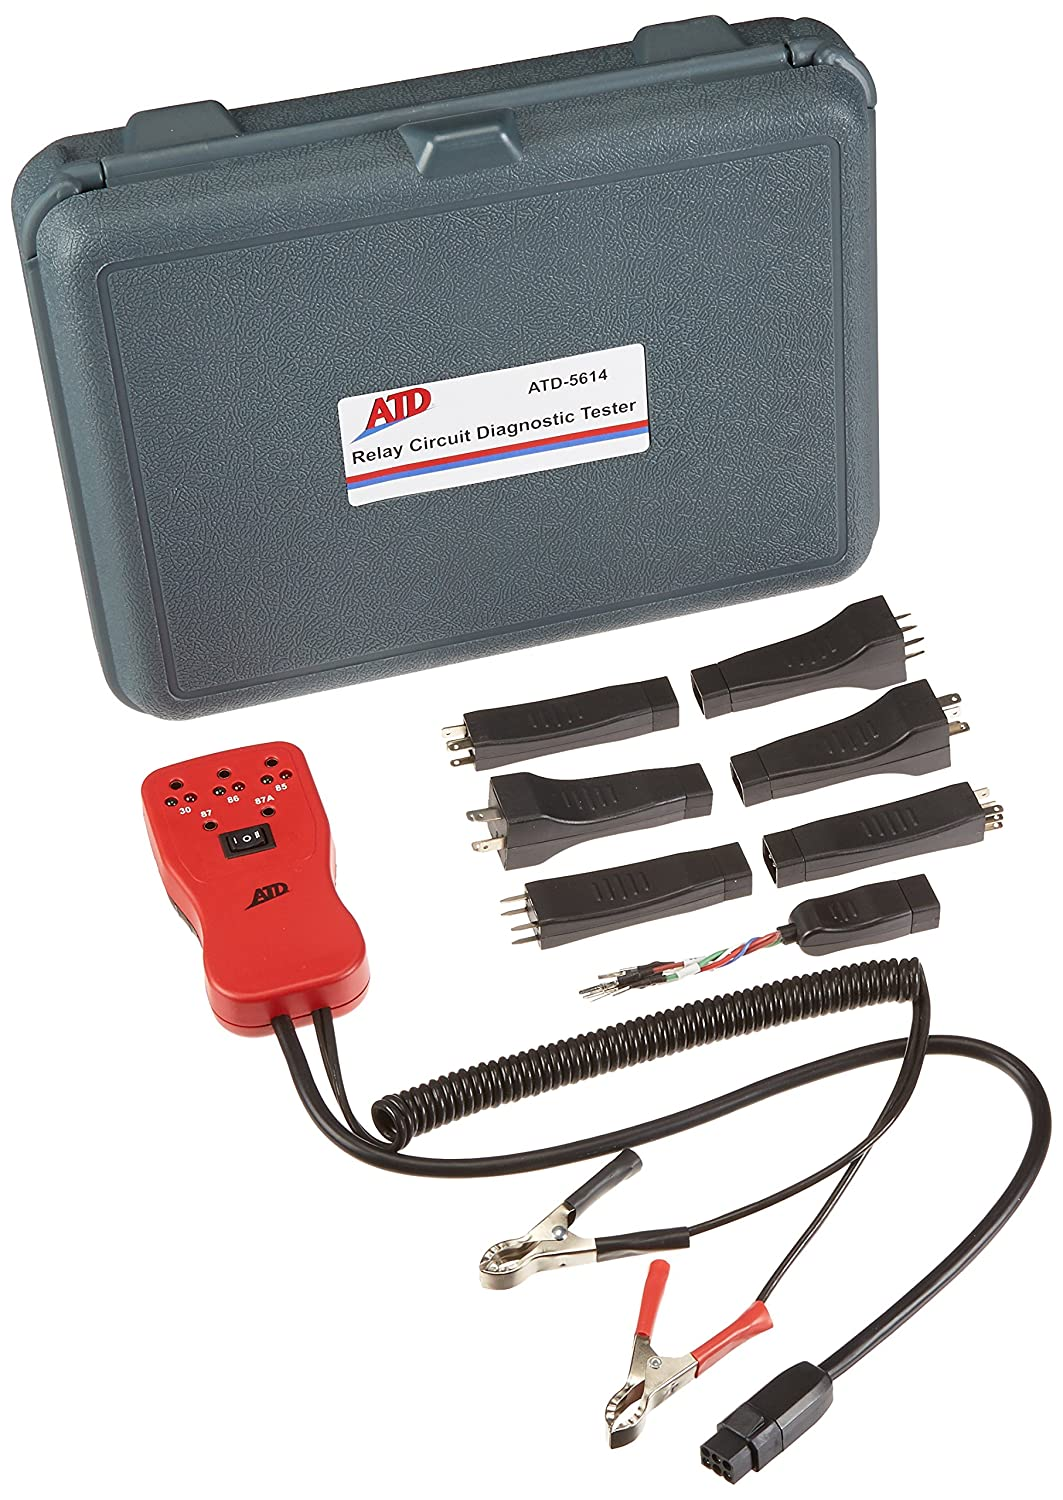 Amazoncom ATD Tools  Relay Circuit Tester Automotive - Vehicle relay testing